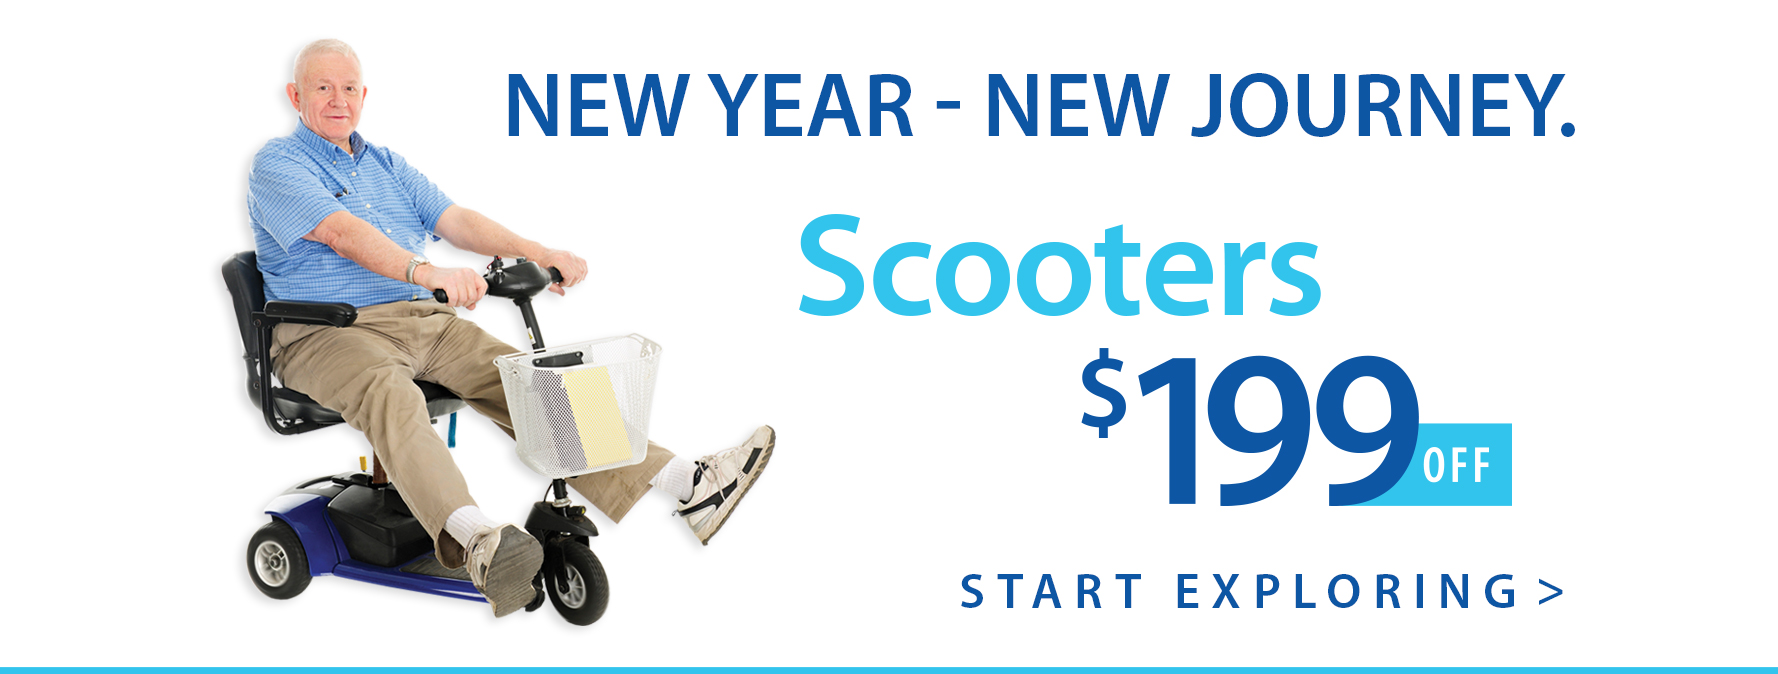 $199 off Scooters - Start Exploring!